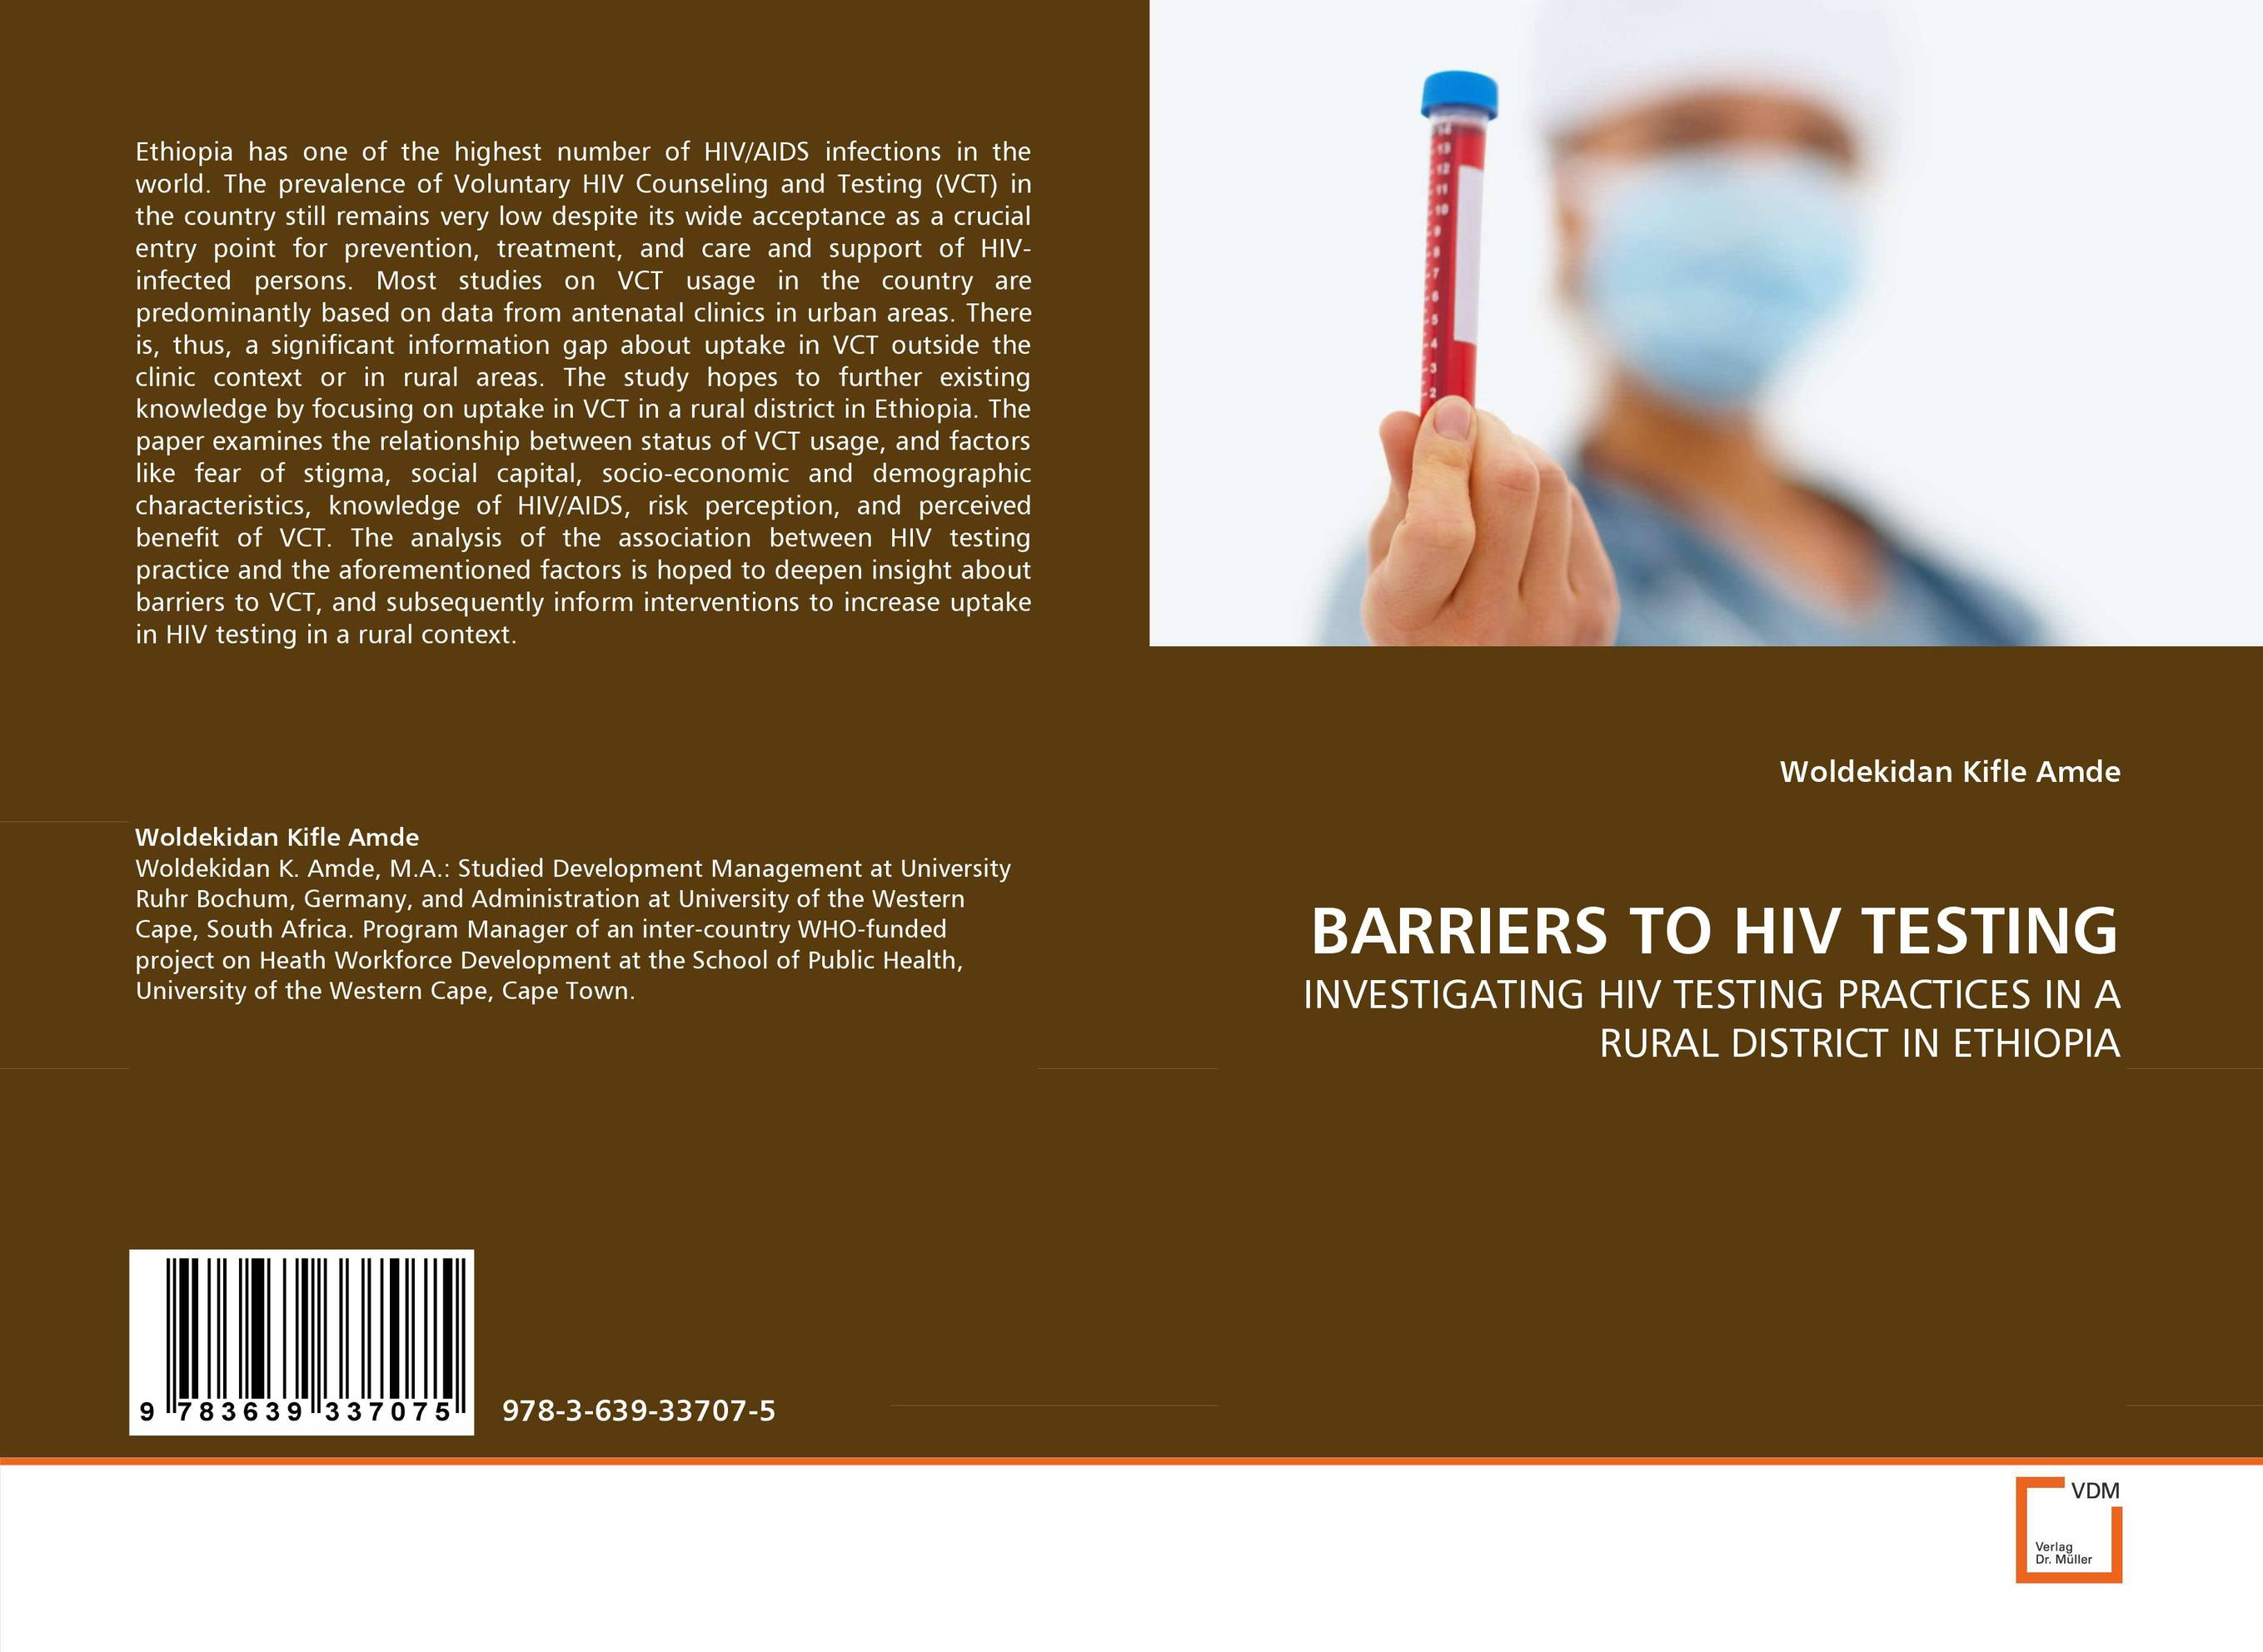 BARRIERS TO HIV TESTING prostate screening motivating factors and barriers